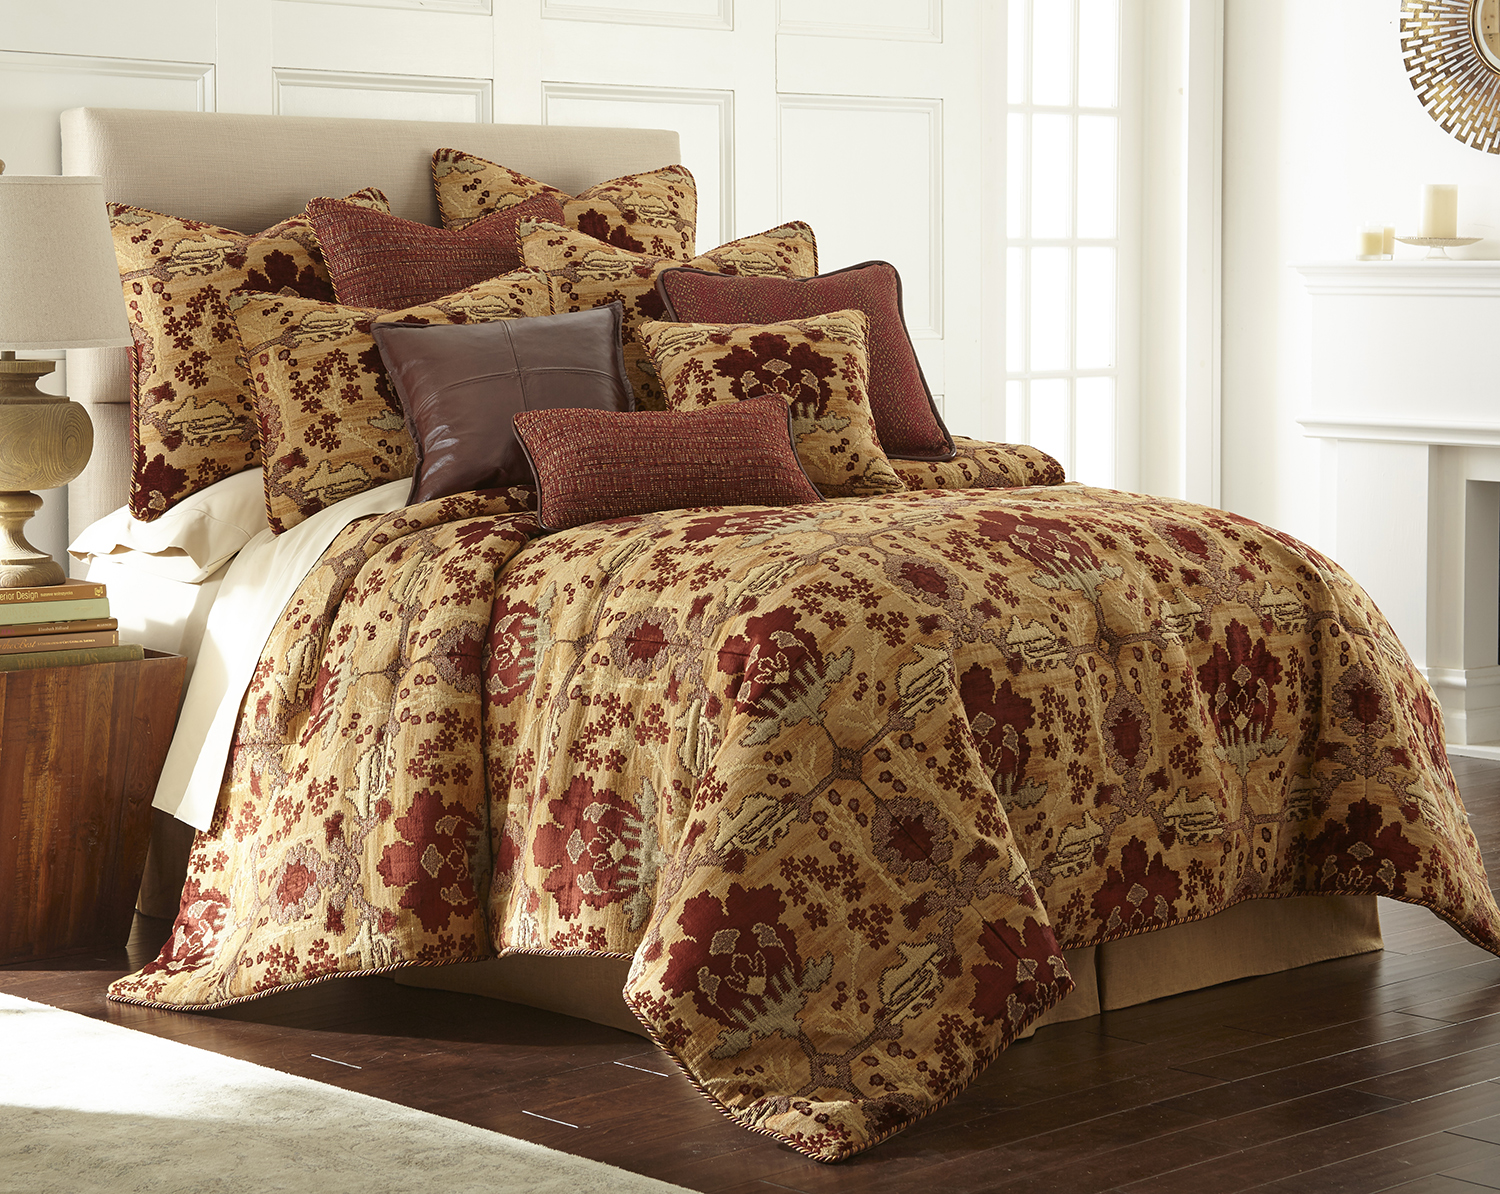 Dakota by Austin Horn Luxury Bedding  BeddingSuperStorecom